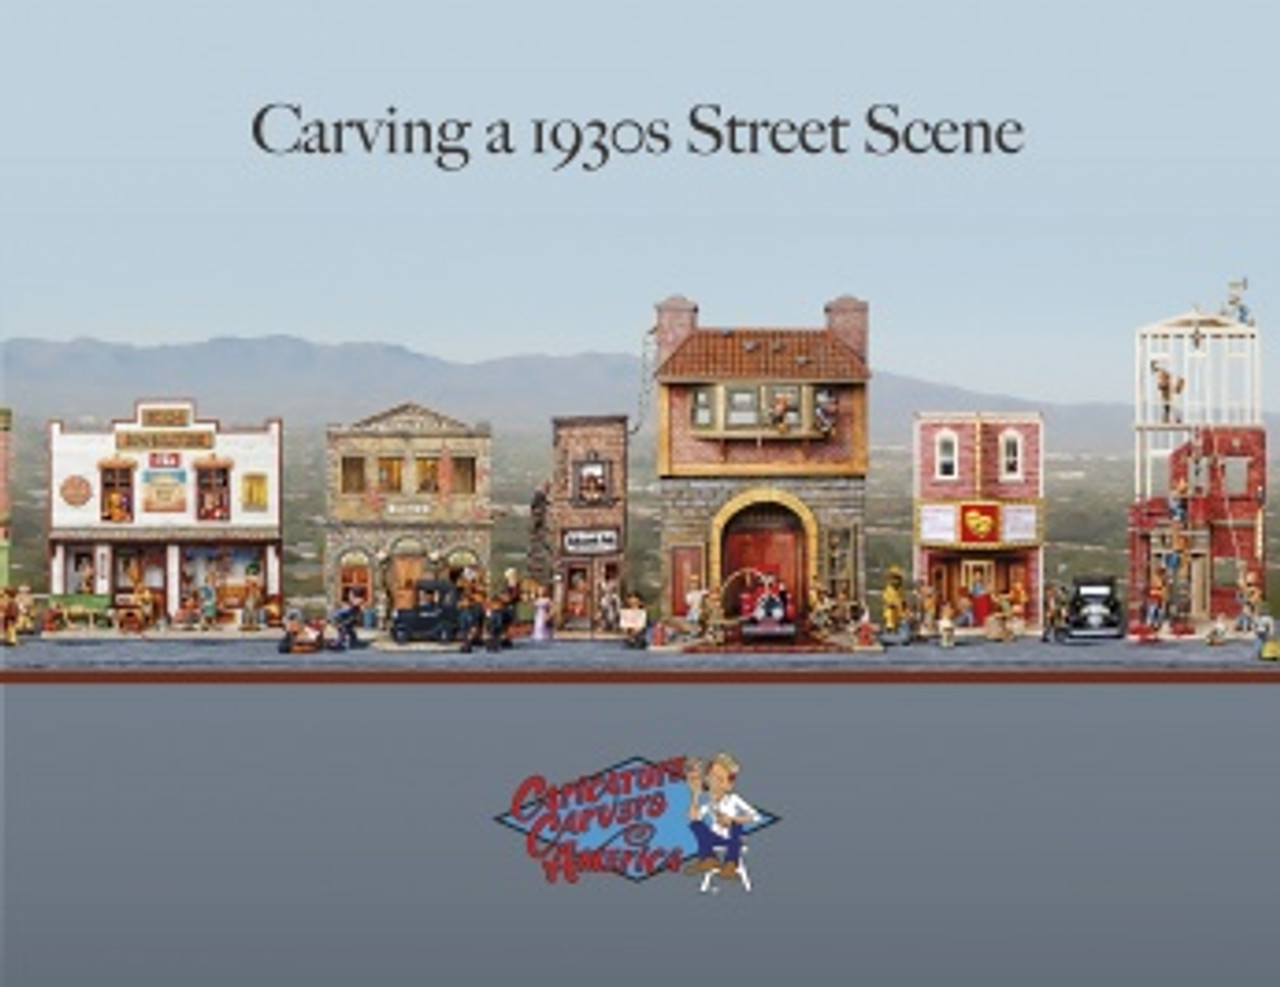 Carving A 1930's Street Scene with a caricature carved village.